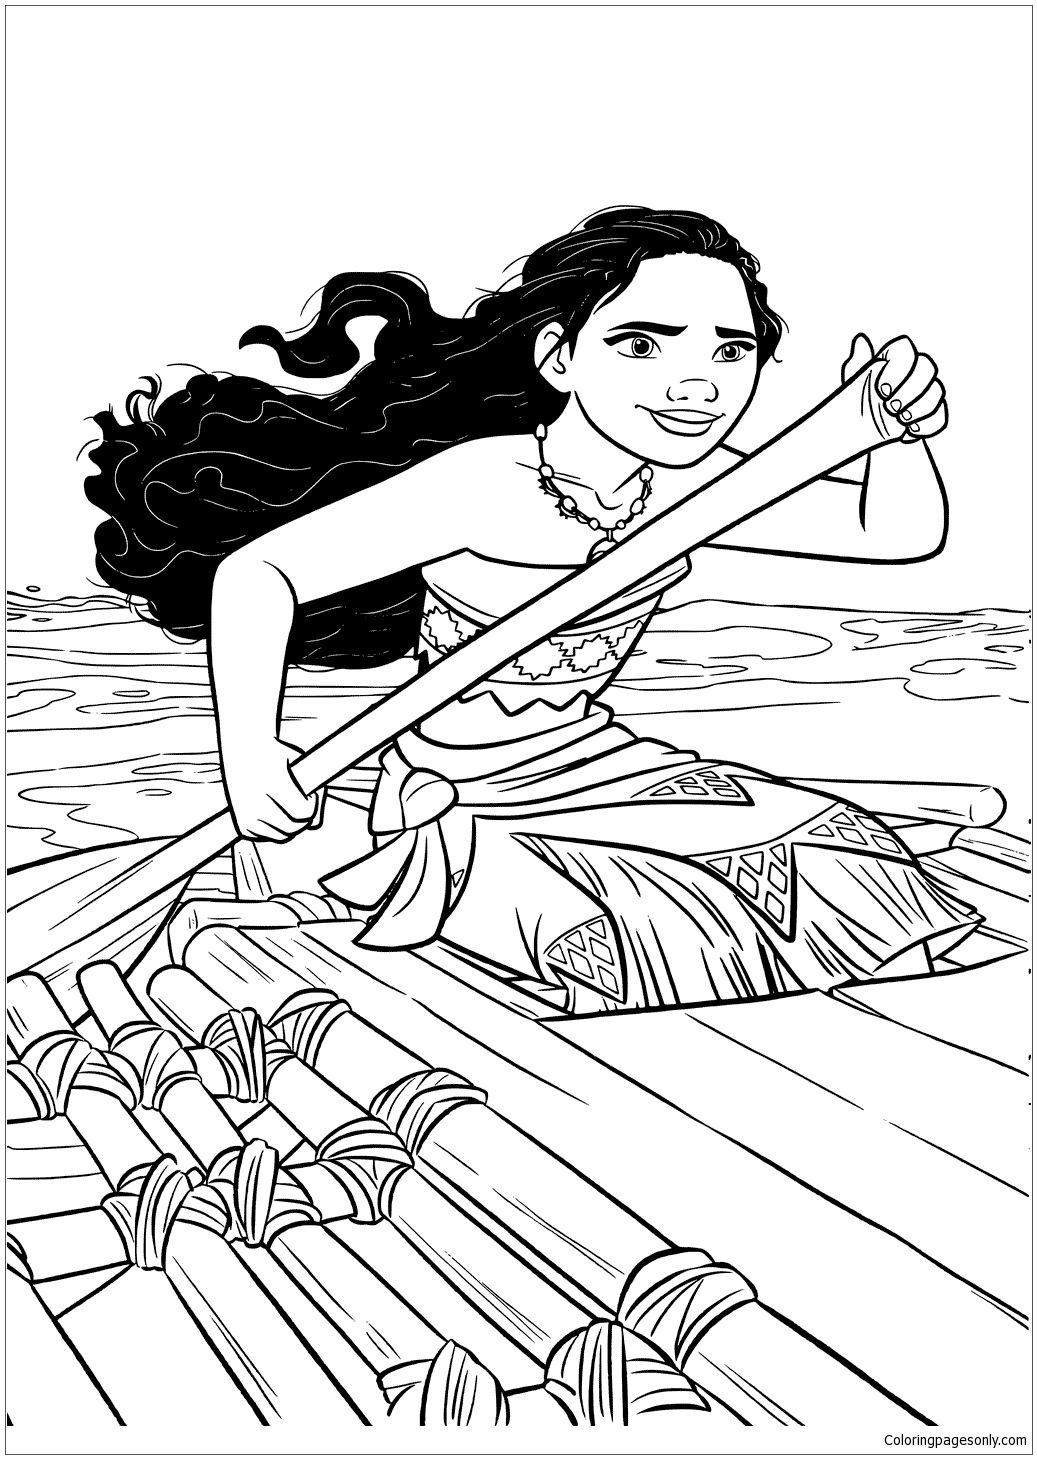 Moana In A Boat Coloring Page With Images Moana Coloring